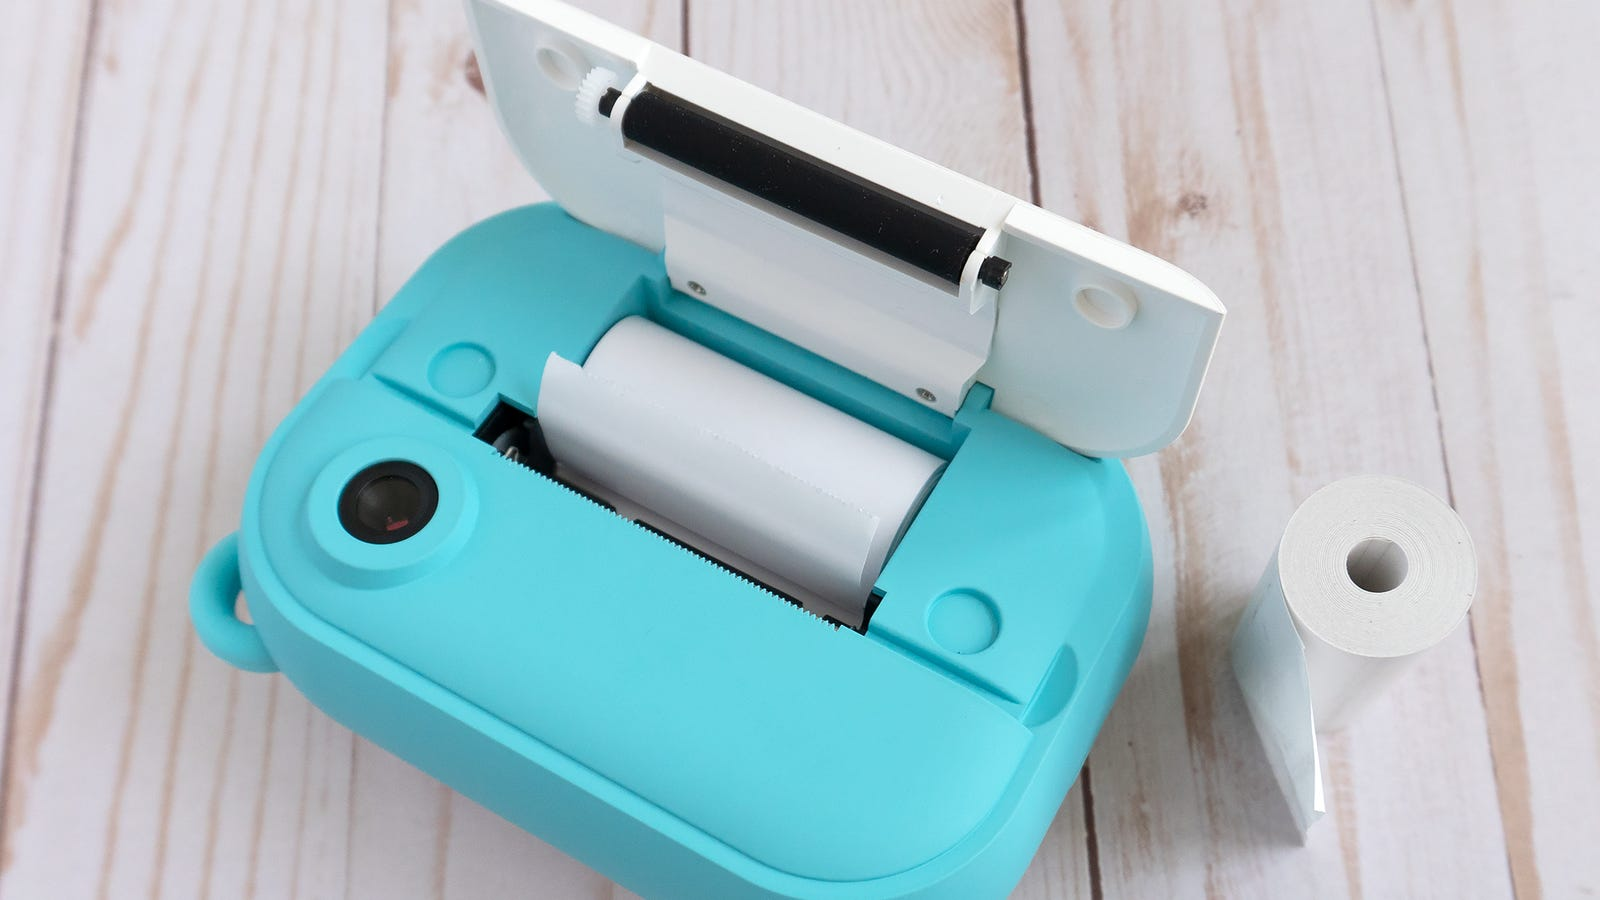 Installing a roll of thermal paper couldn't be easier: You just open a door on the front of the camera, drop the roll in, and then ensure the end sticks out of a thin slot when you close the camera up again.